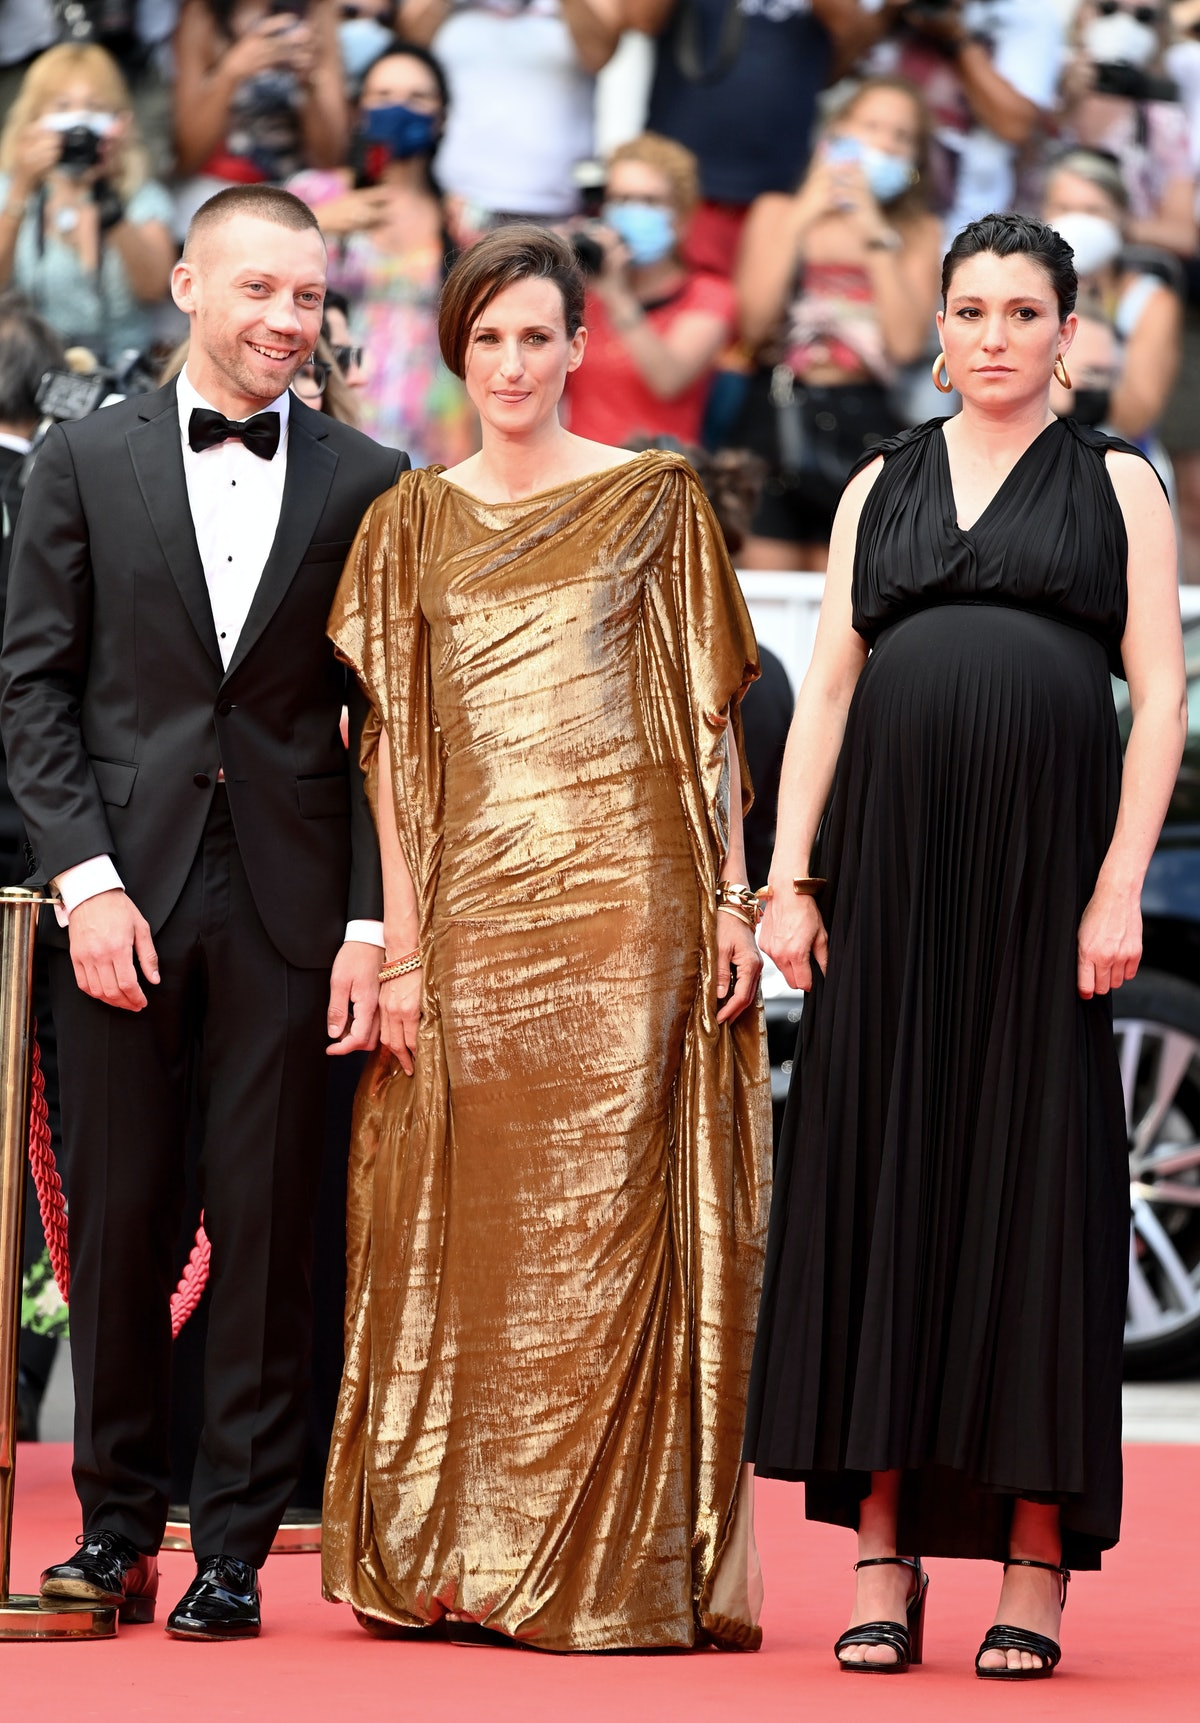 """CANNES, FRANCE - JULY 15: Aleksandr Kuznetsov, Camille Cottin and Rachel Lang attend the """"France"""" screening during the 74th annual Cannes Film Festival on July 15, 2021 in Cannes, France. (Photo by Kate Green/Getty Images)"""